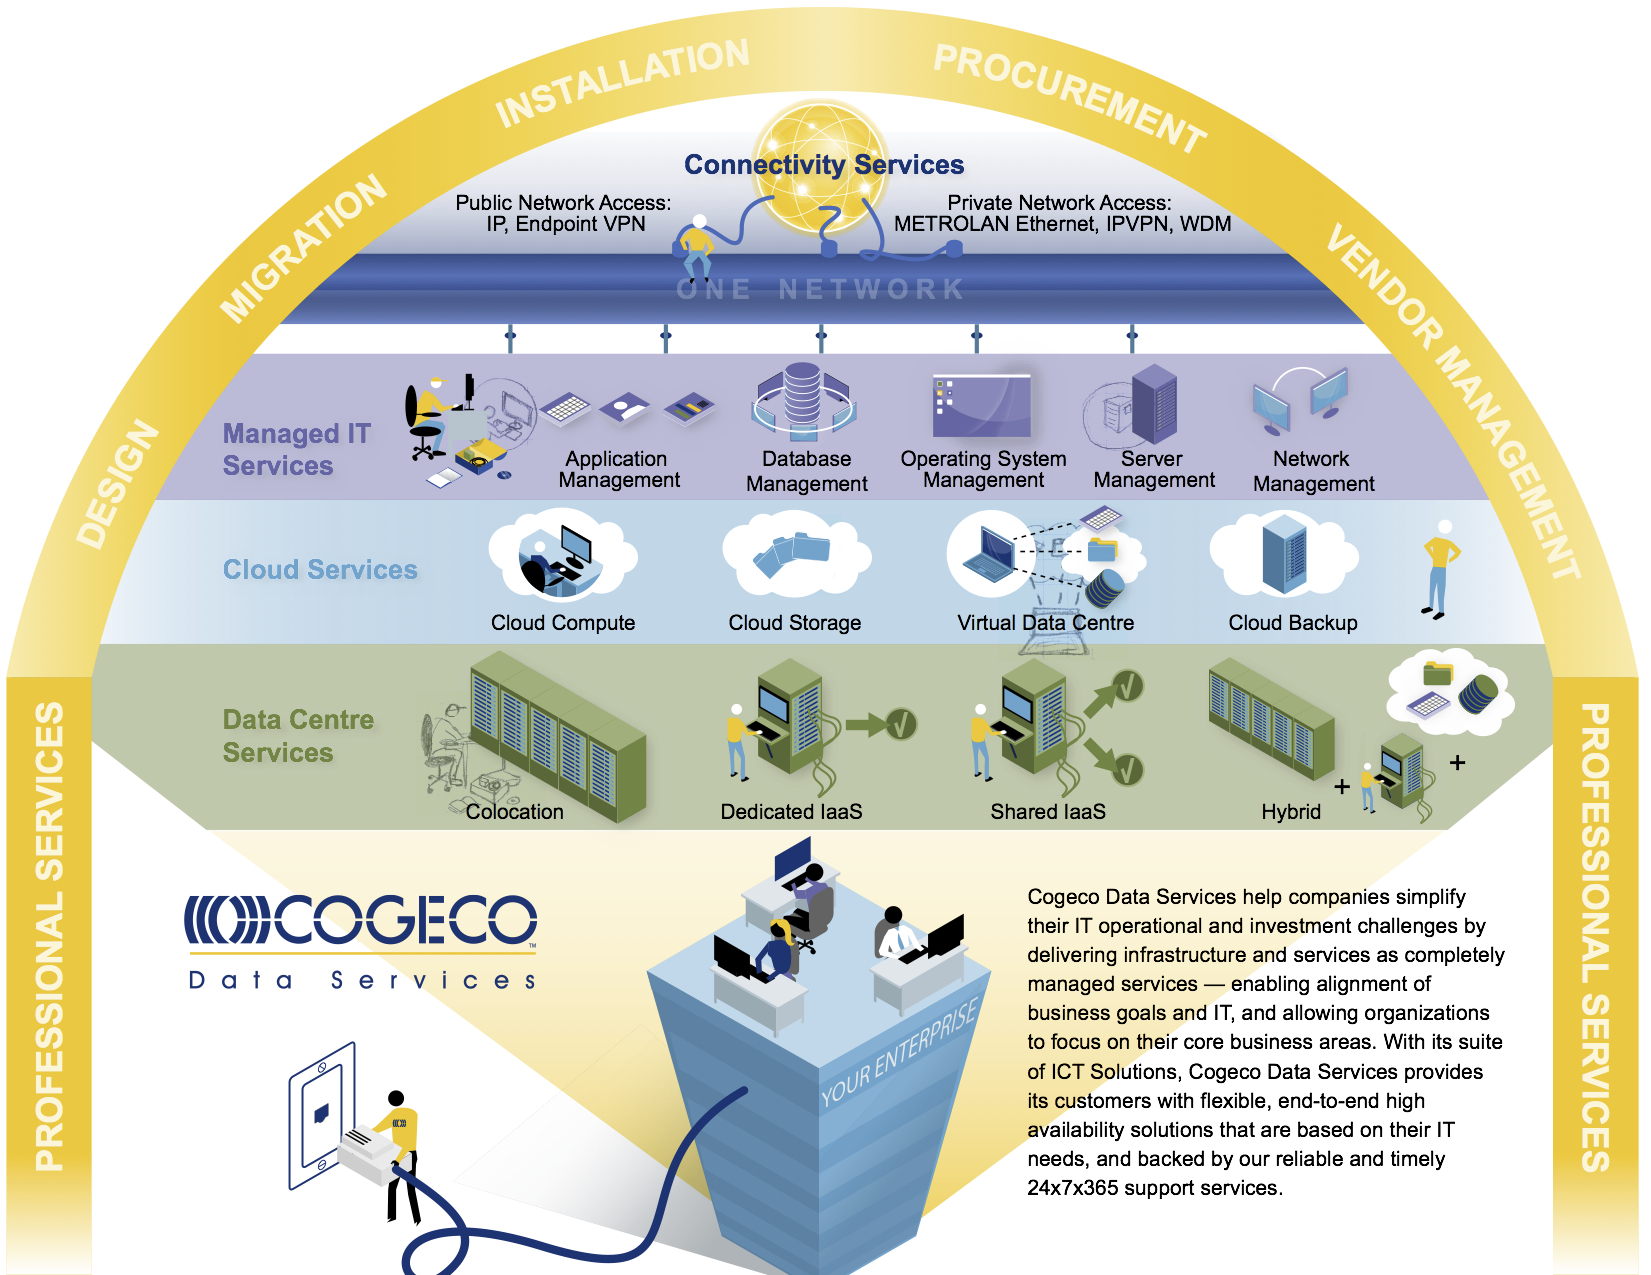 Cogeco Data Services Pictogram